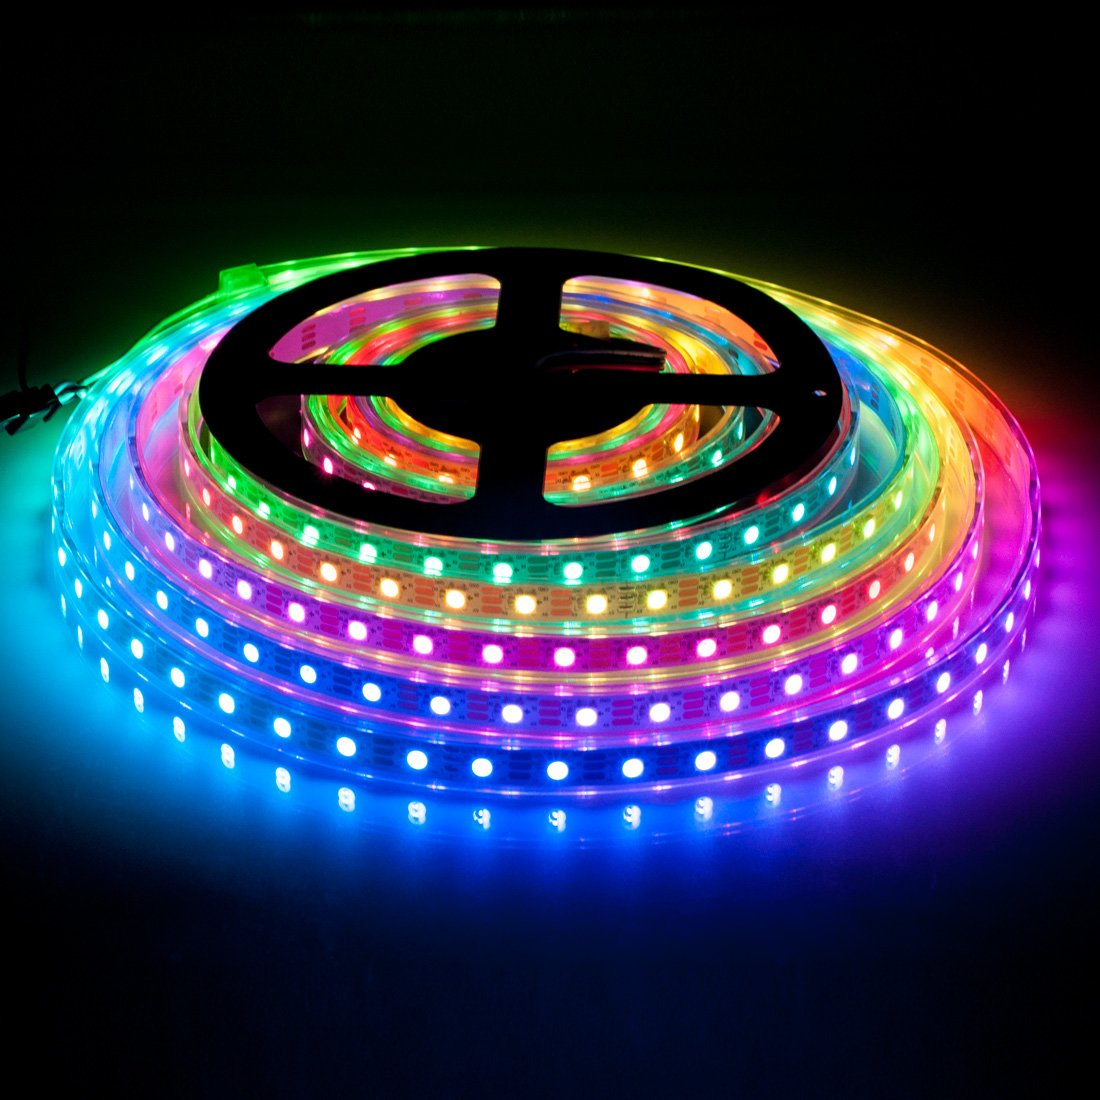 Btf Lighting Rgbw Rgbcw White Sk6812 Similar Ws2812b 164ft 5m 60leds Pixels M Individually Addressable Flexible 4 Color In 1 Led Dream Simple Rgb Strip Effect Circuit Electronics Projects Circuits